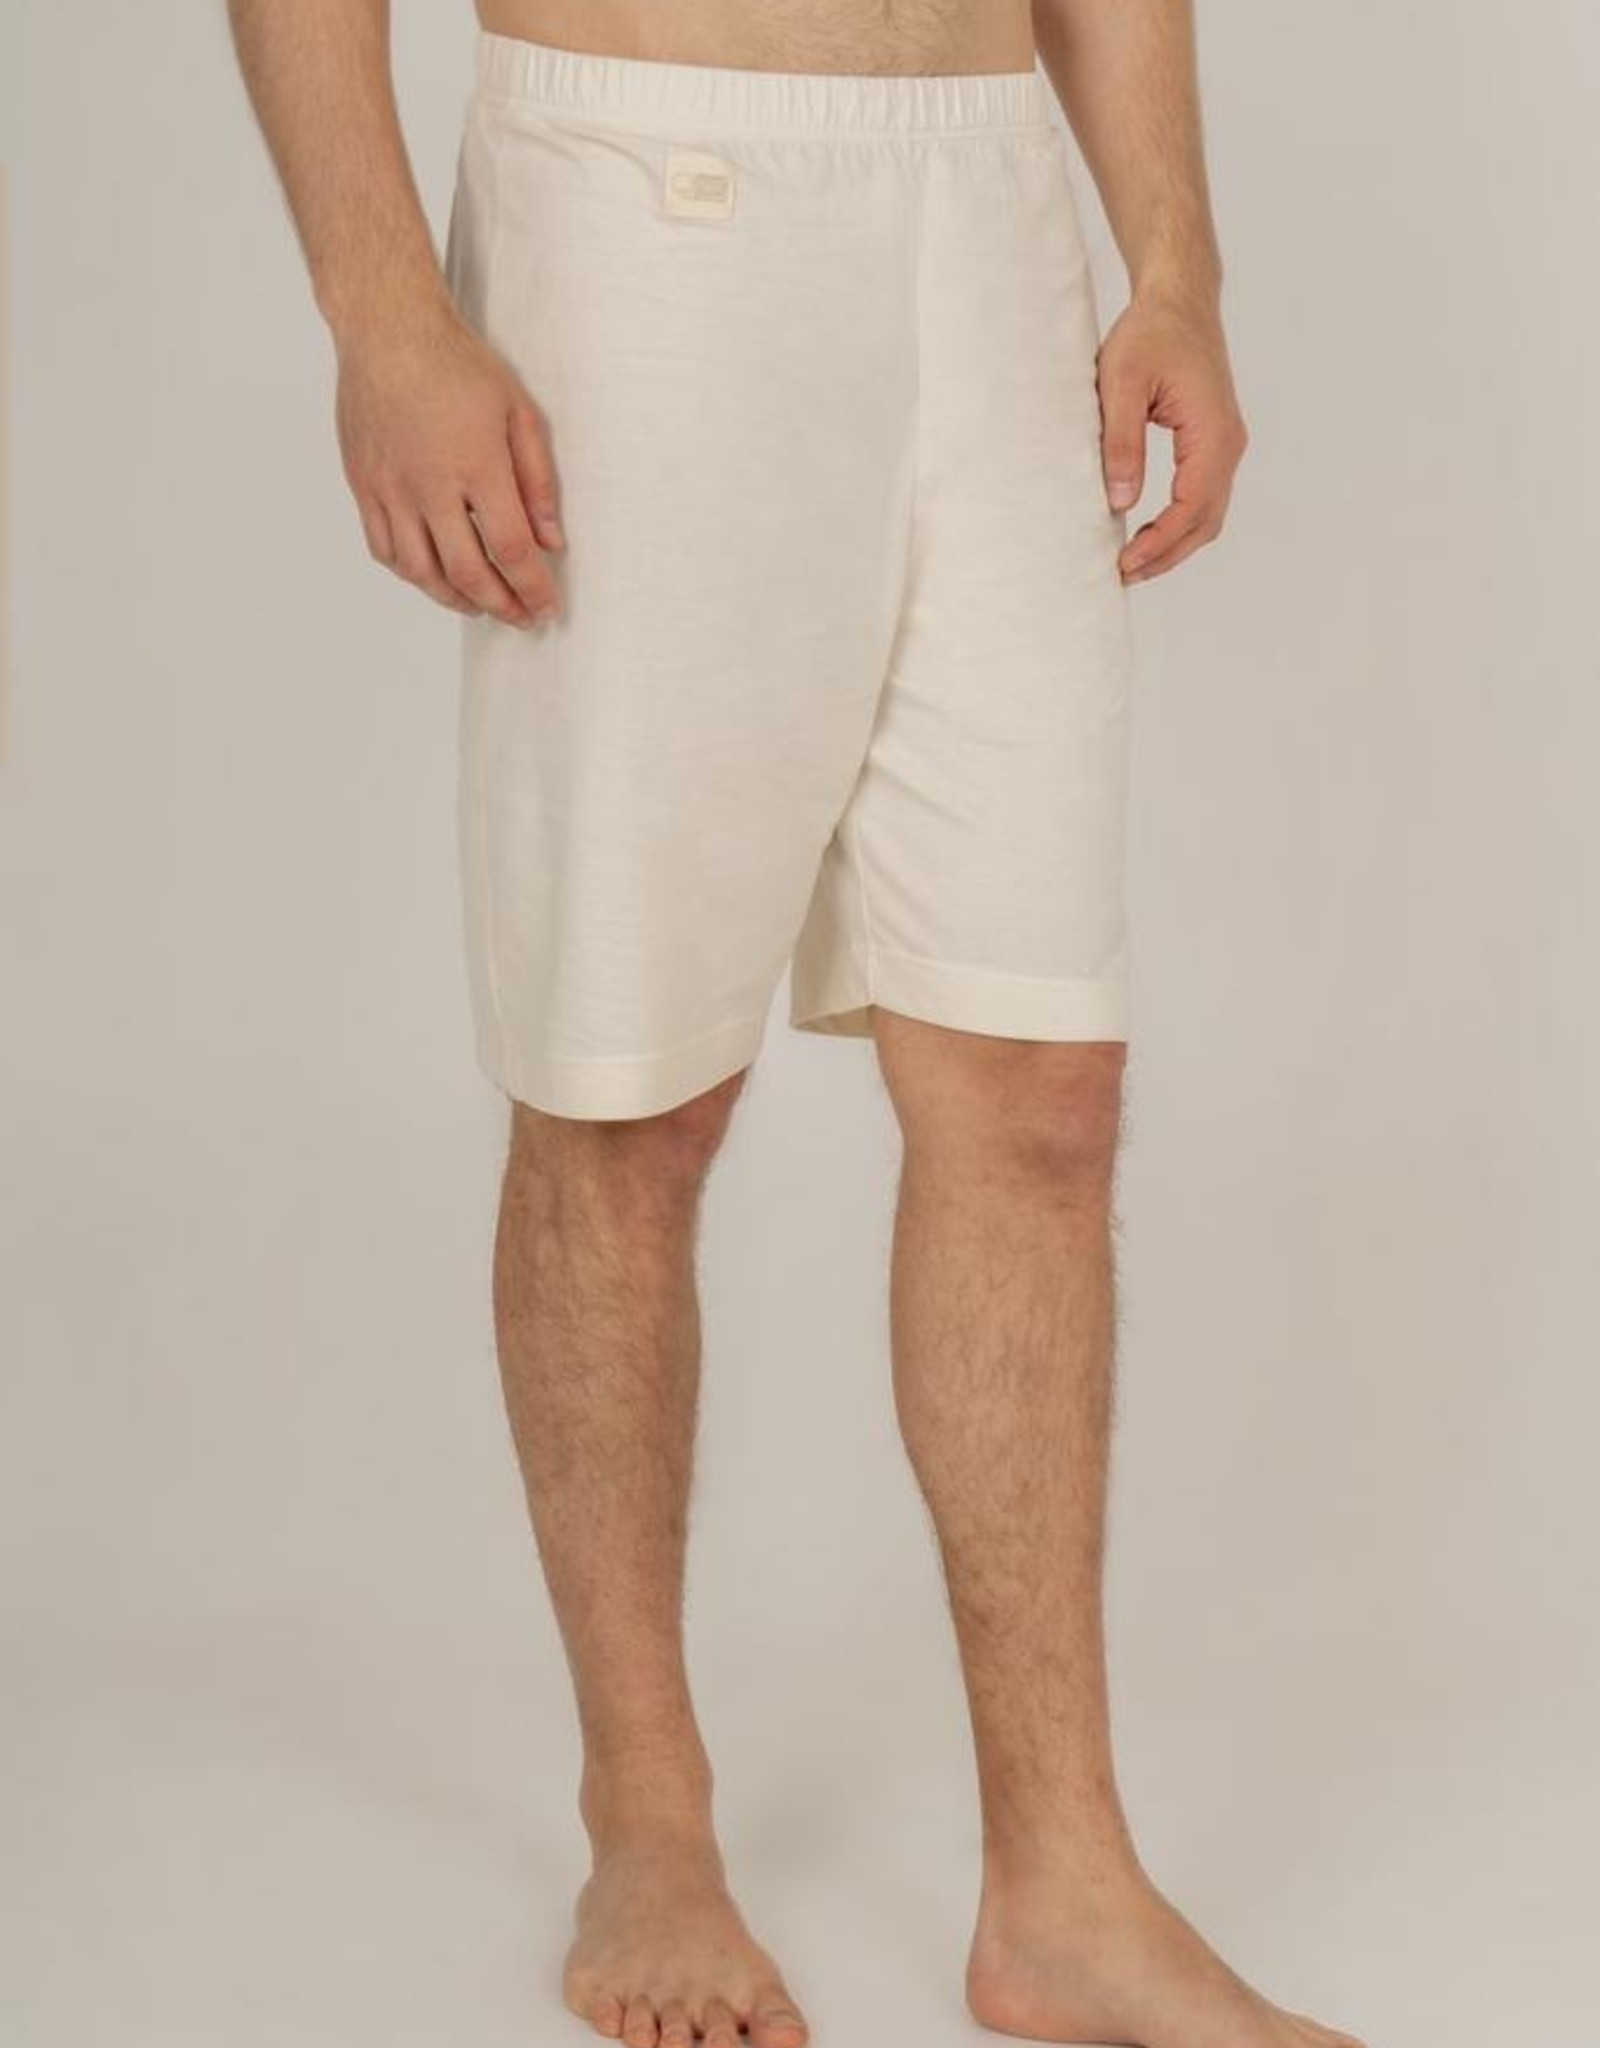 Short pajama pants for men from Organic Cotton Colours